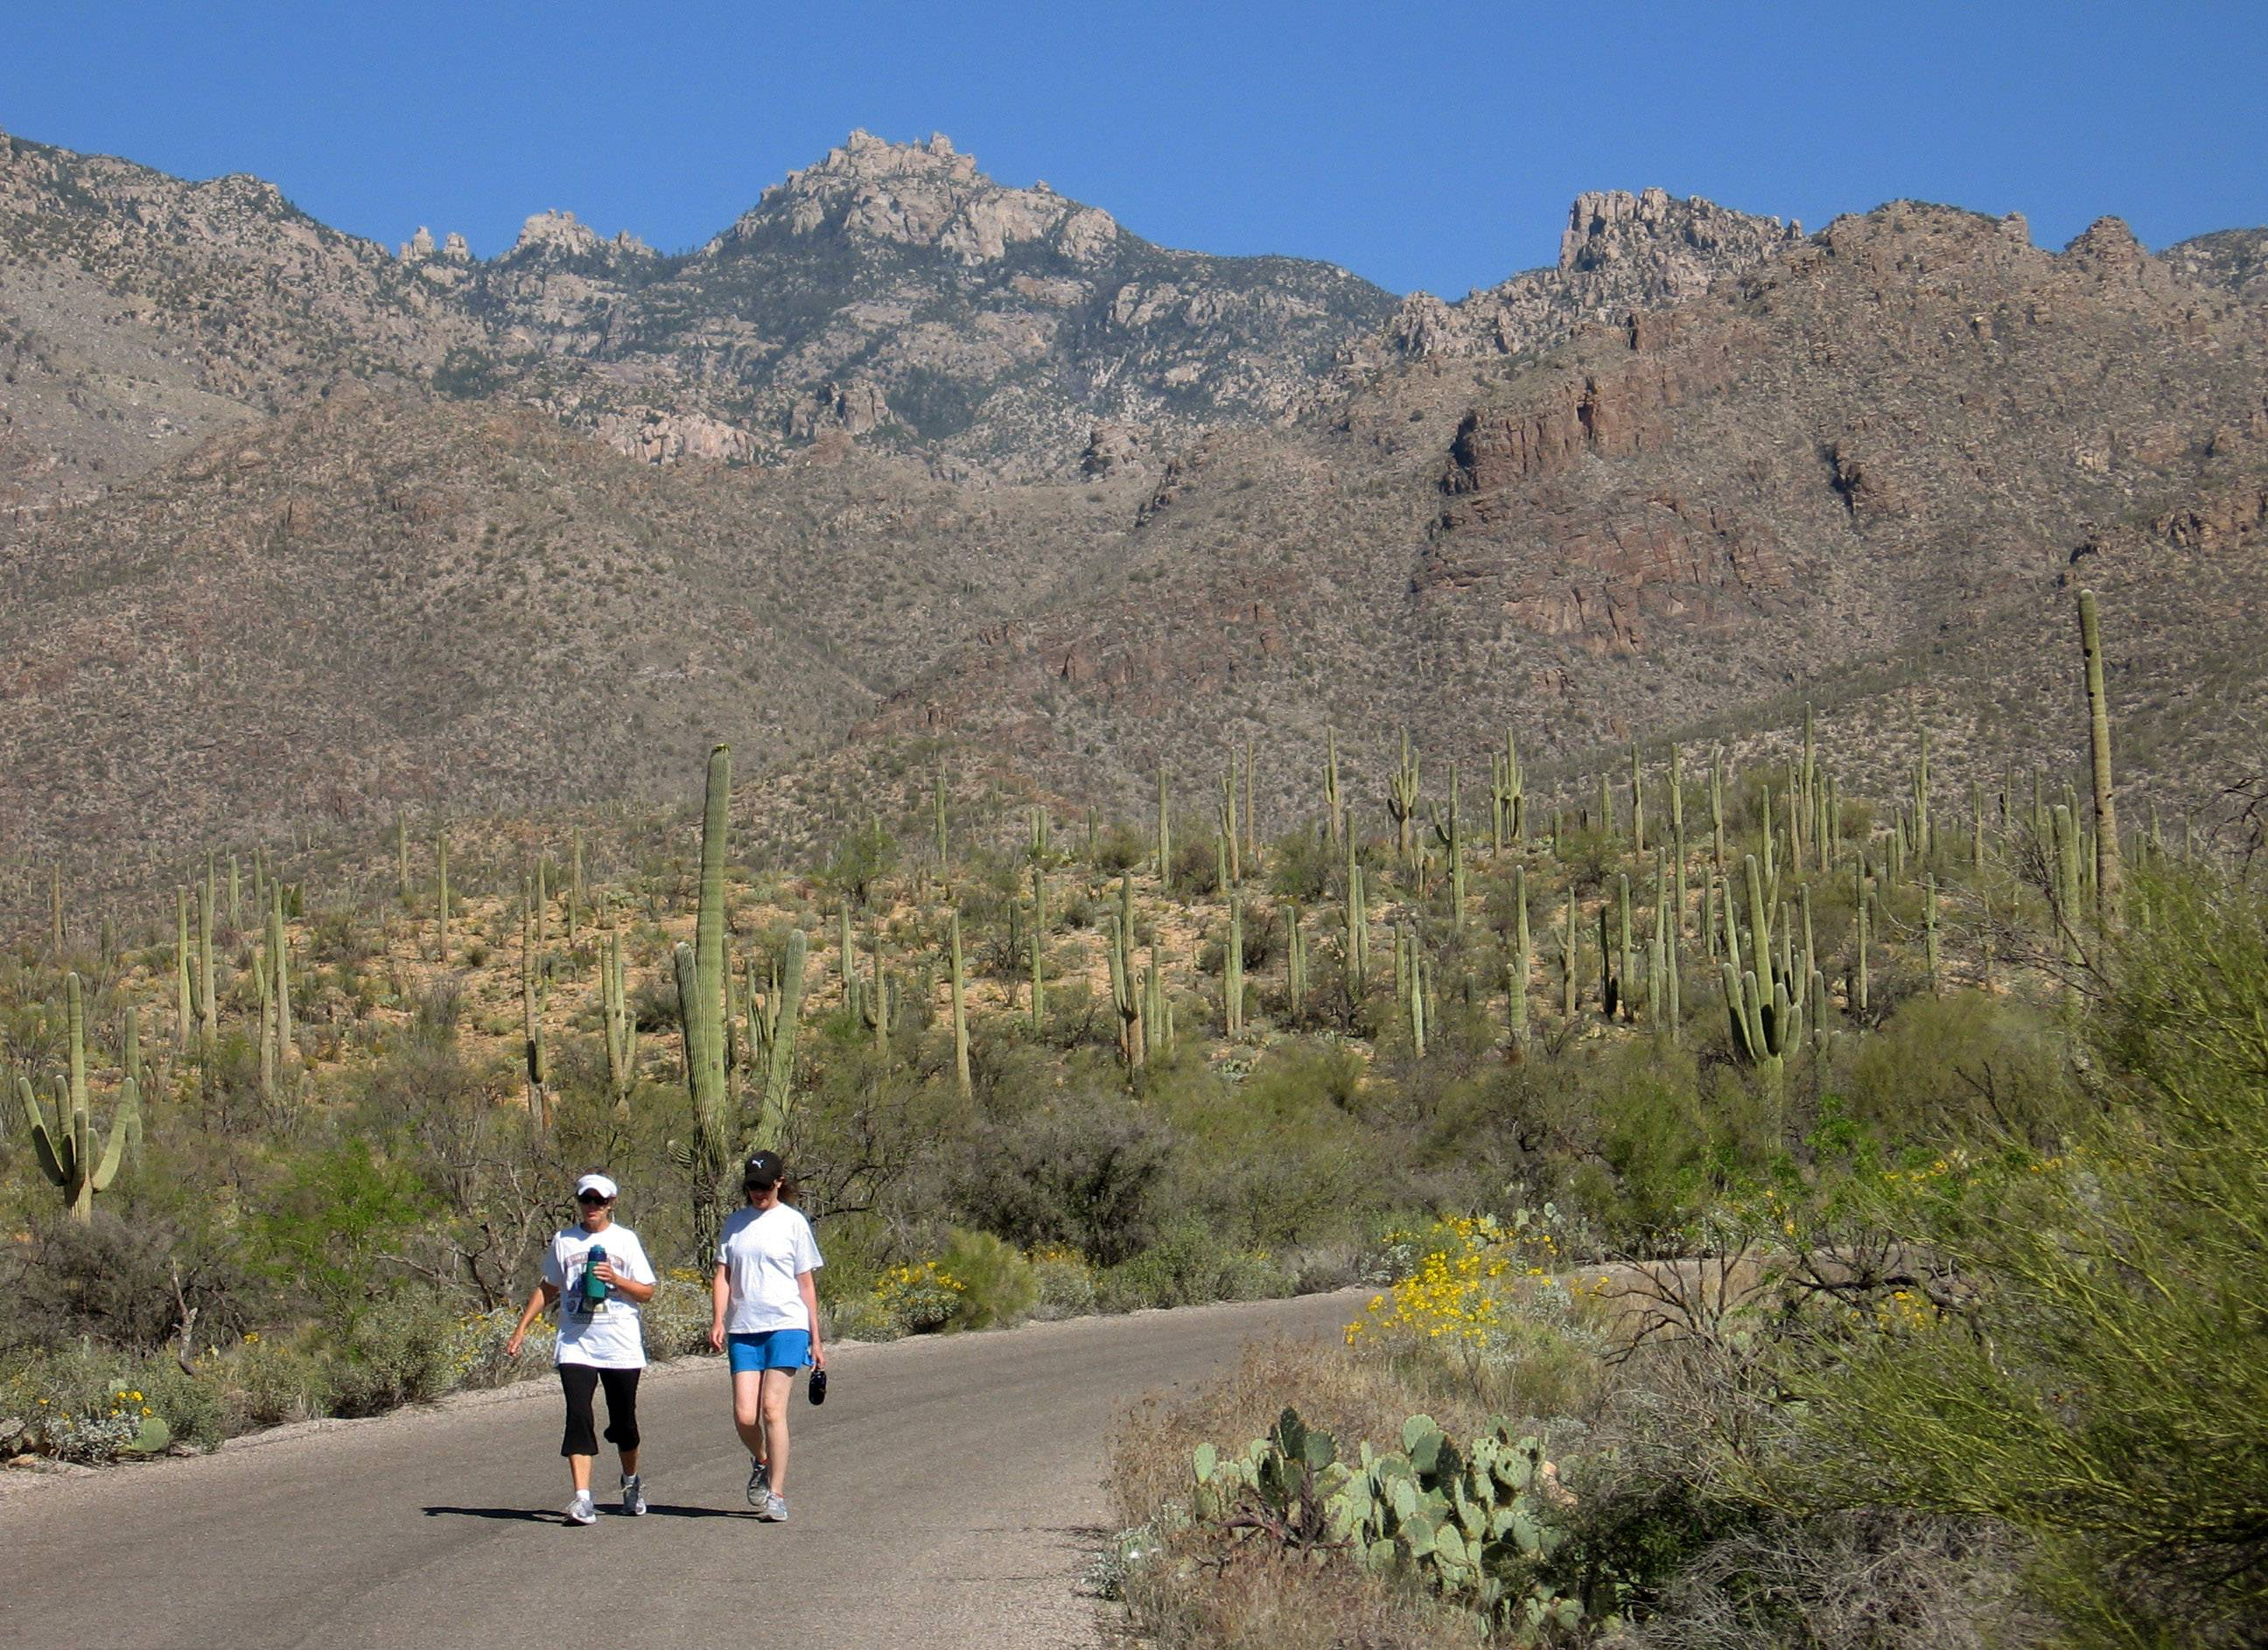 Hikers in Sabino Canyon Recreation Area just north of Tucson, Ariz., enjoy sunshine, scenery and peaceful hiking trails.